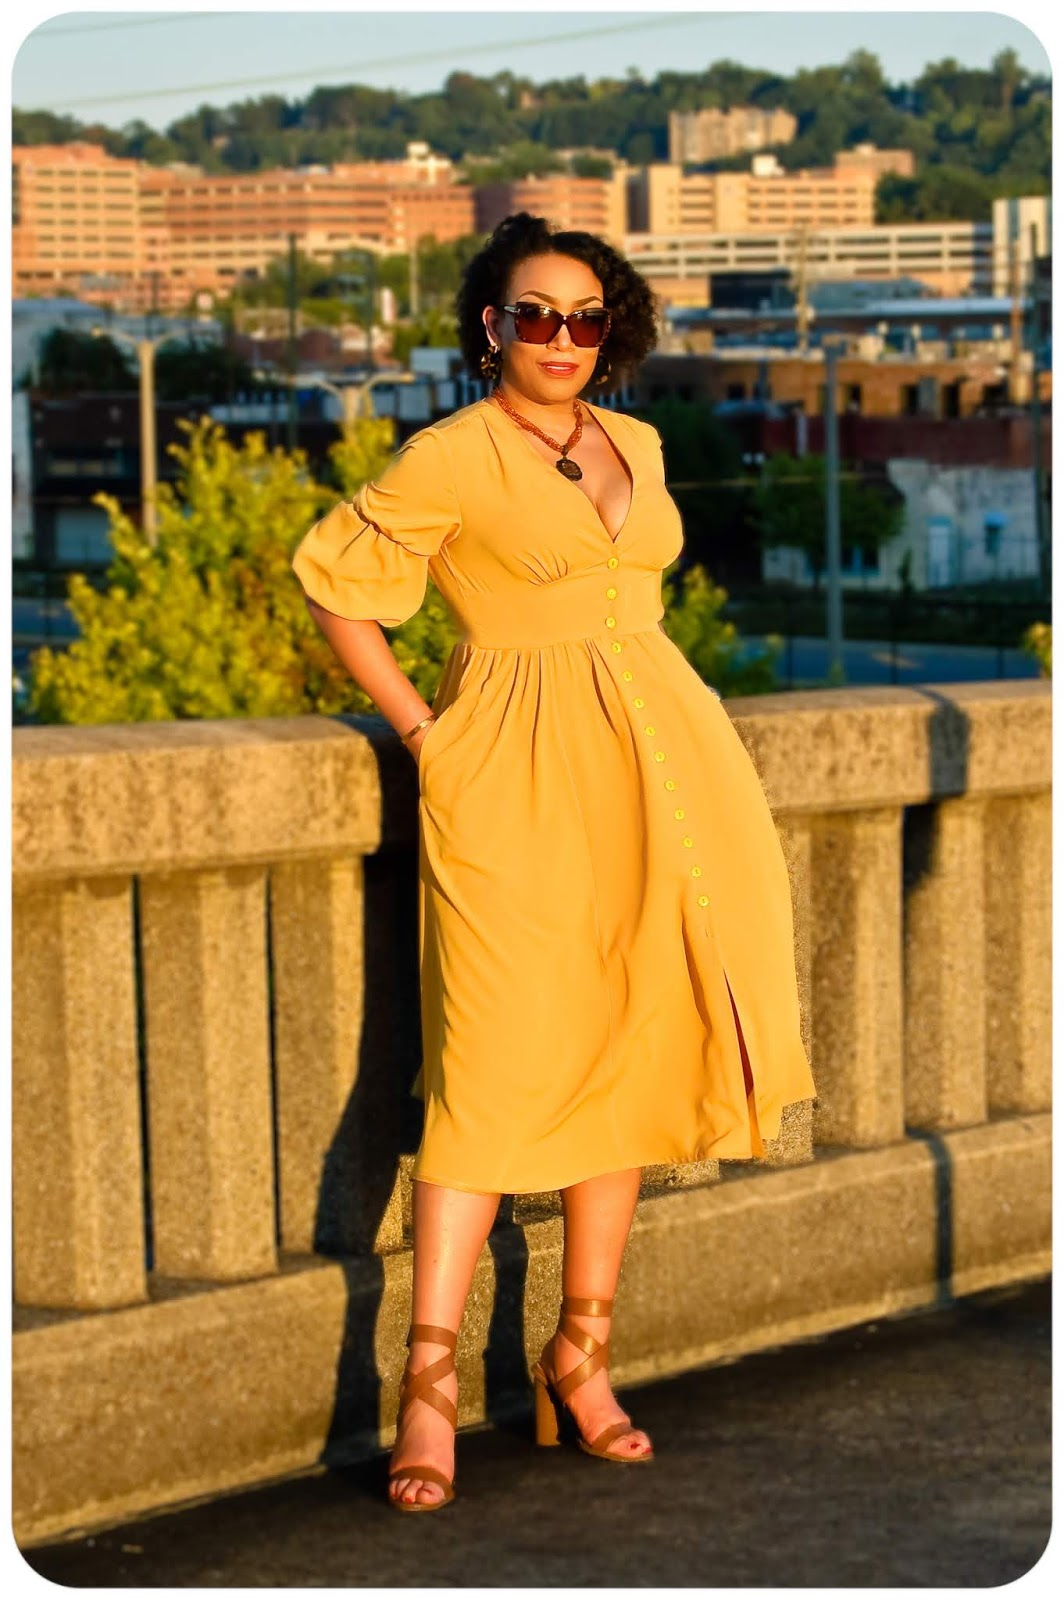 McCall's 7974 - Inspired by Cult Gaia Willow Dress - Erica Bunker DIY Style!